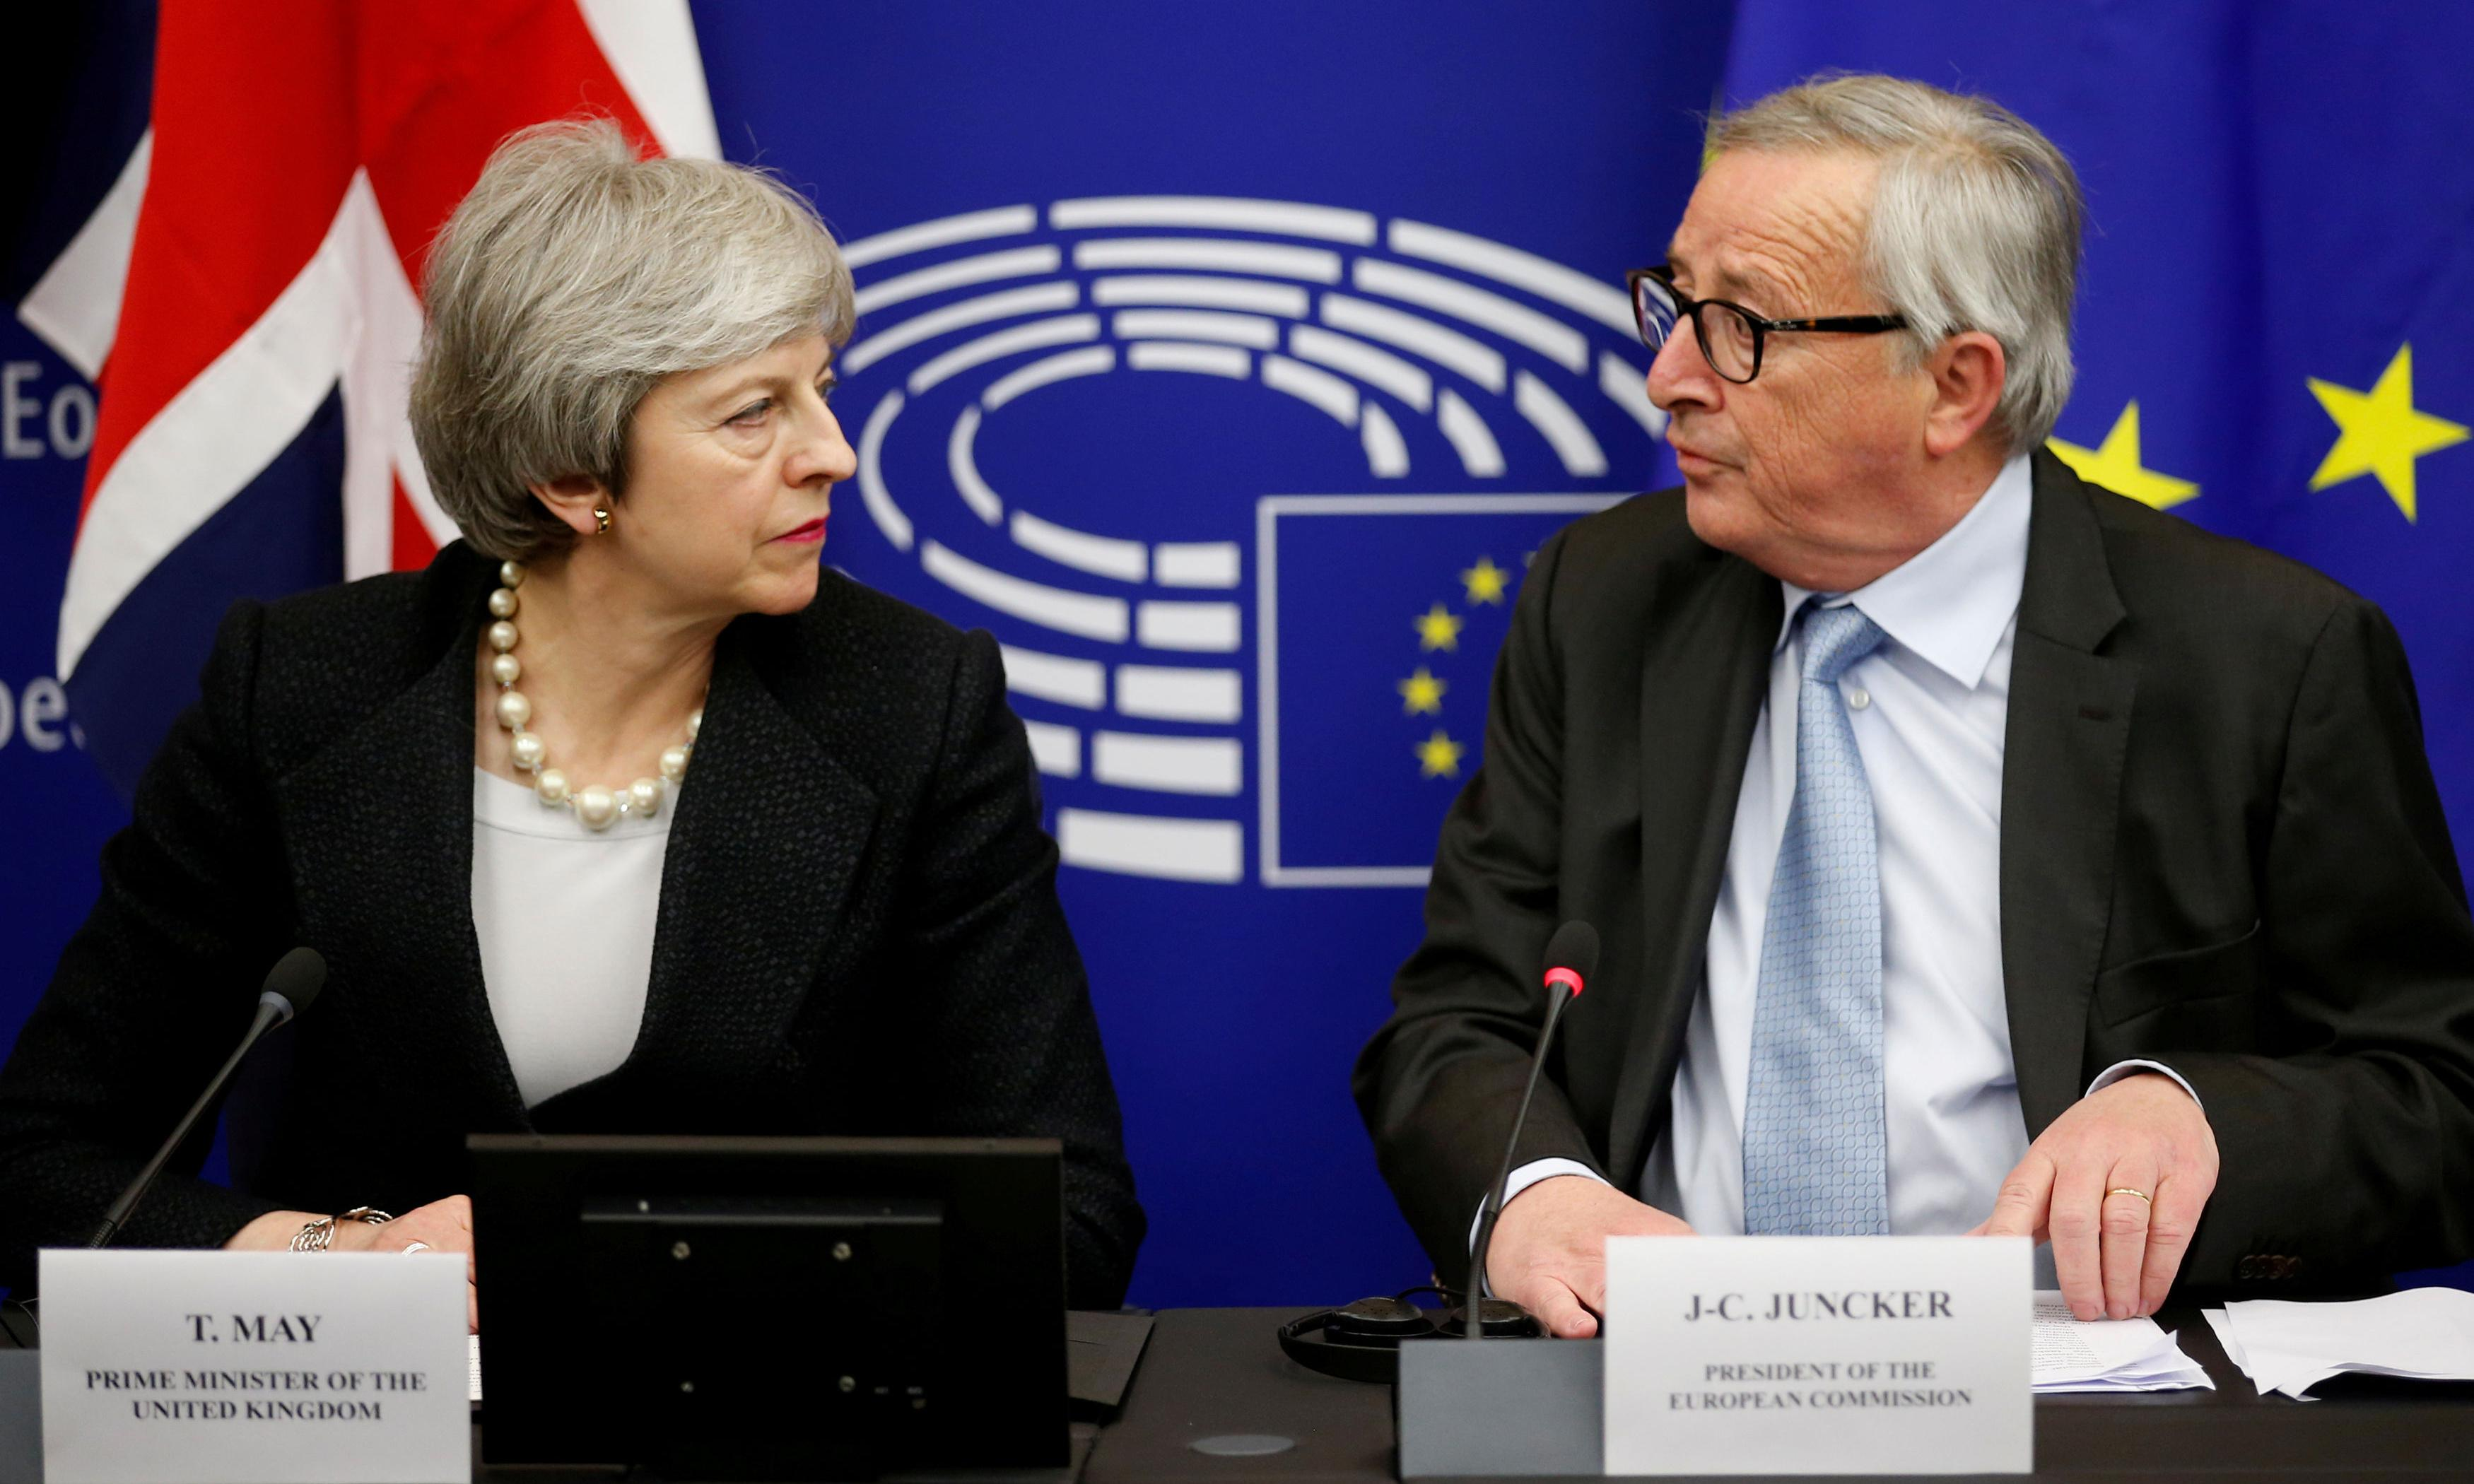 The prime minister got one thing right: we can't blame the EU for this